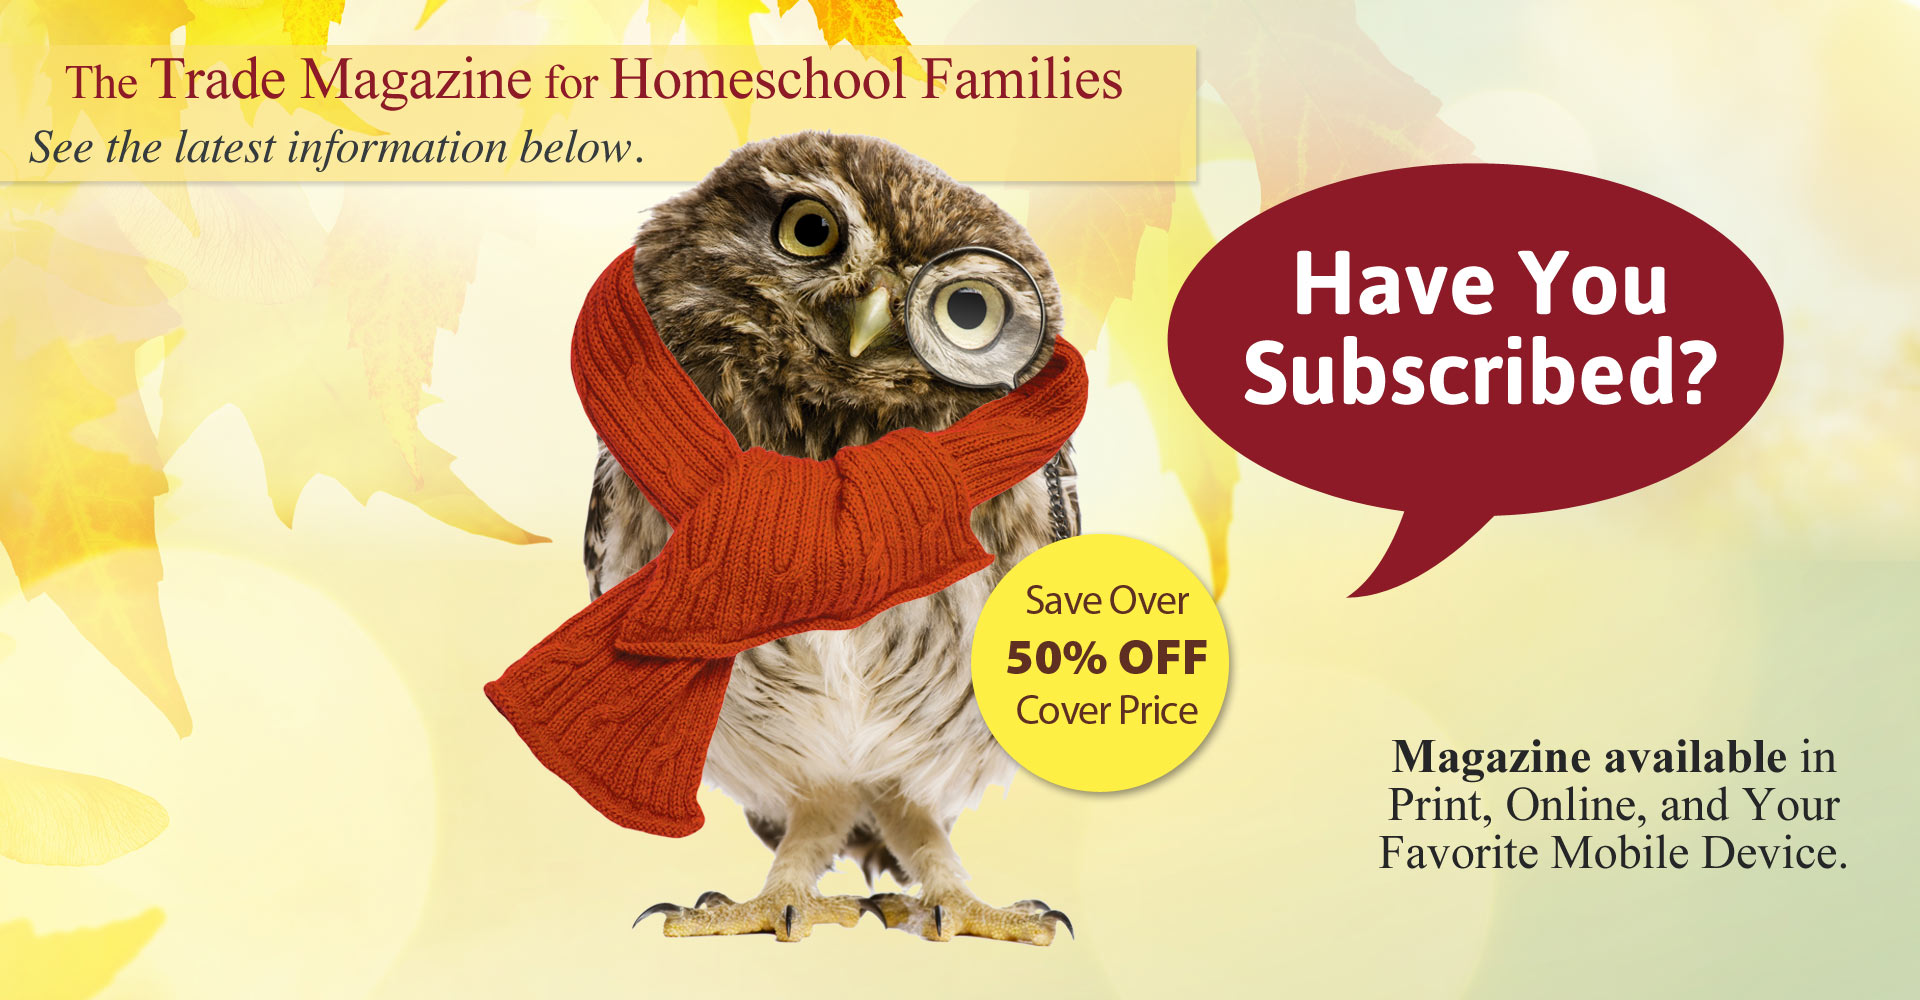 The Trade Magazine for Homeschool Families